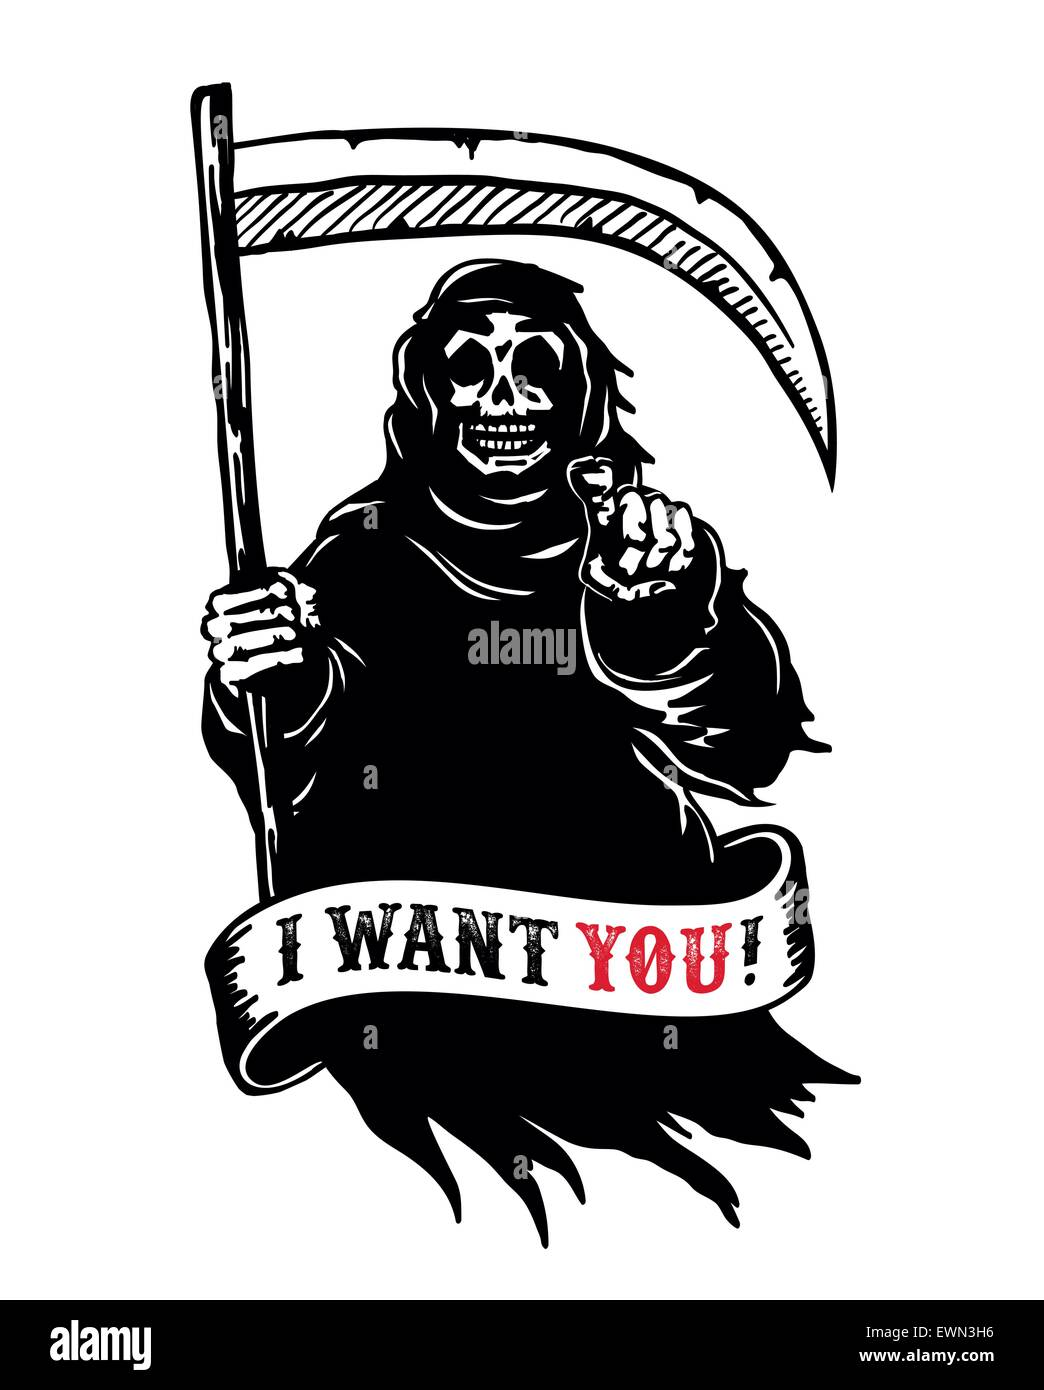 Grim reaper with scythe in dark hooded cloak, death pointing finger. I want you dead! black and white vector - Stock Image